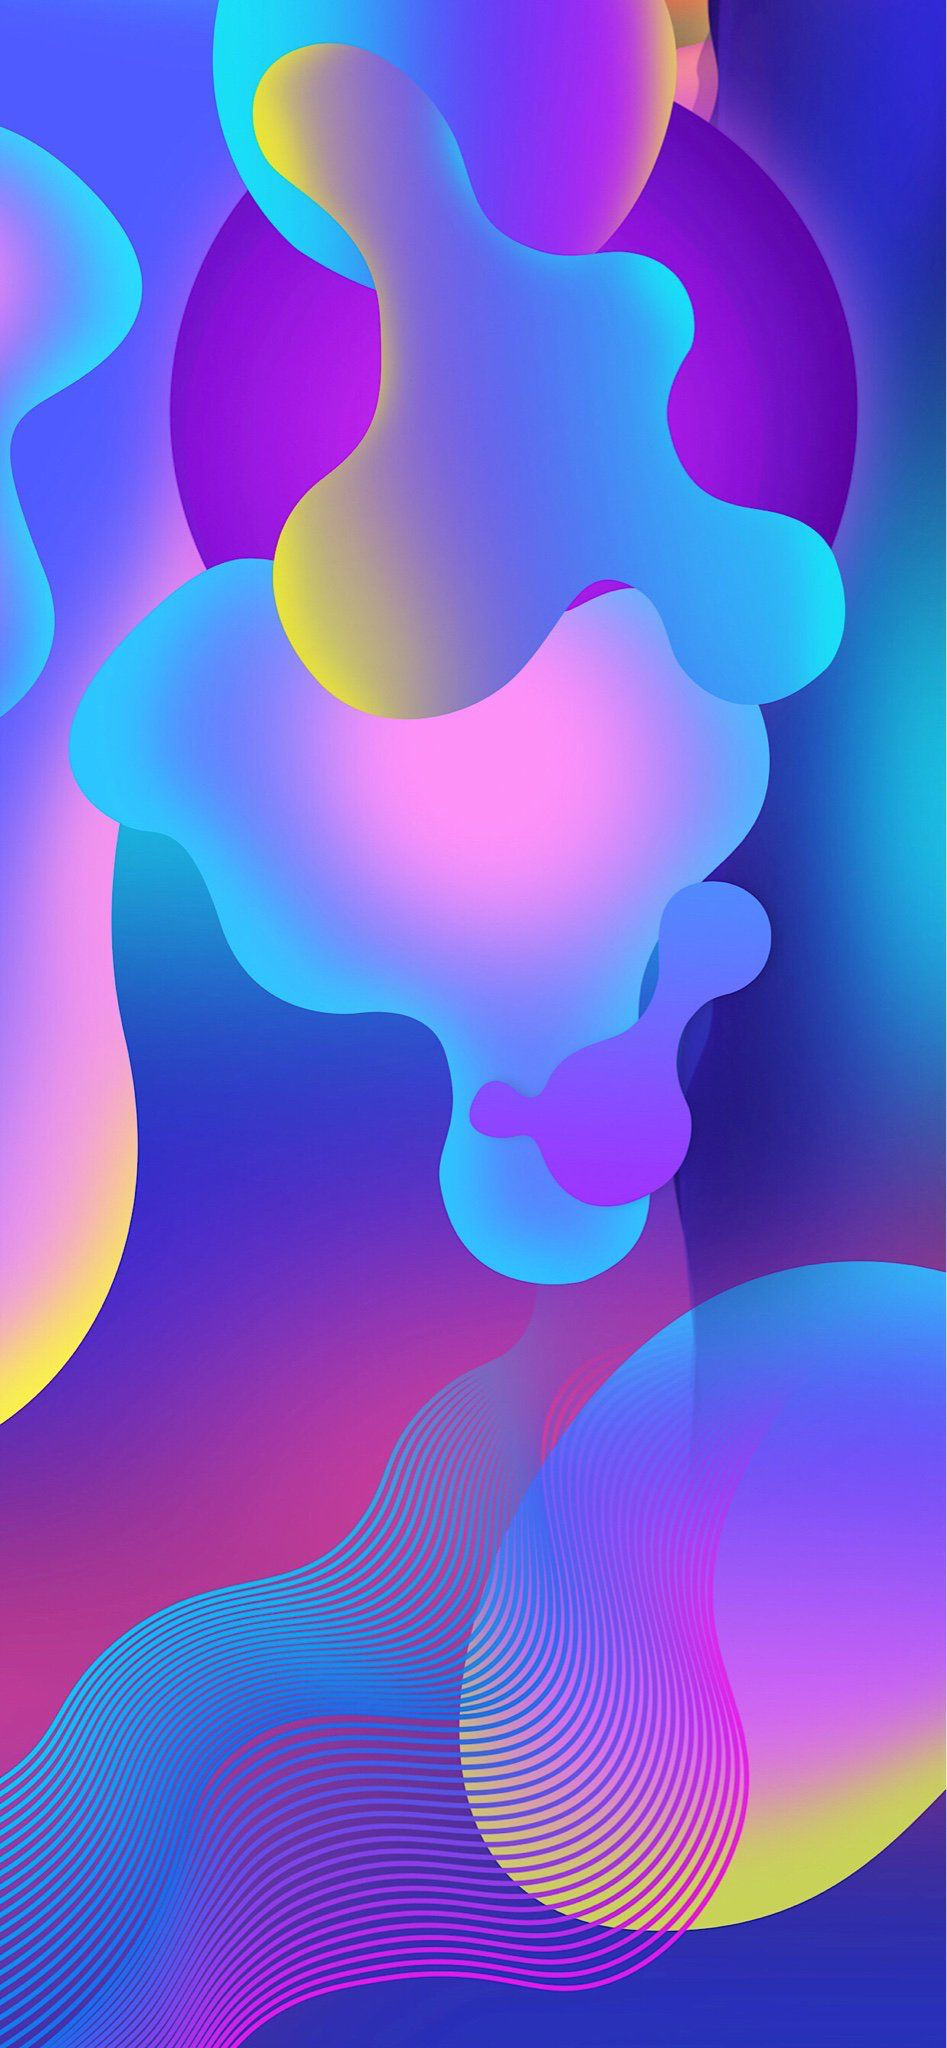 Iphone Xs Max Wallpaper Iphone Wallpaper Smartphone Wallpaper